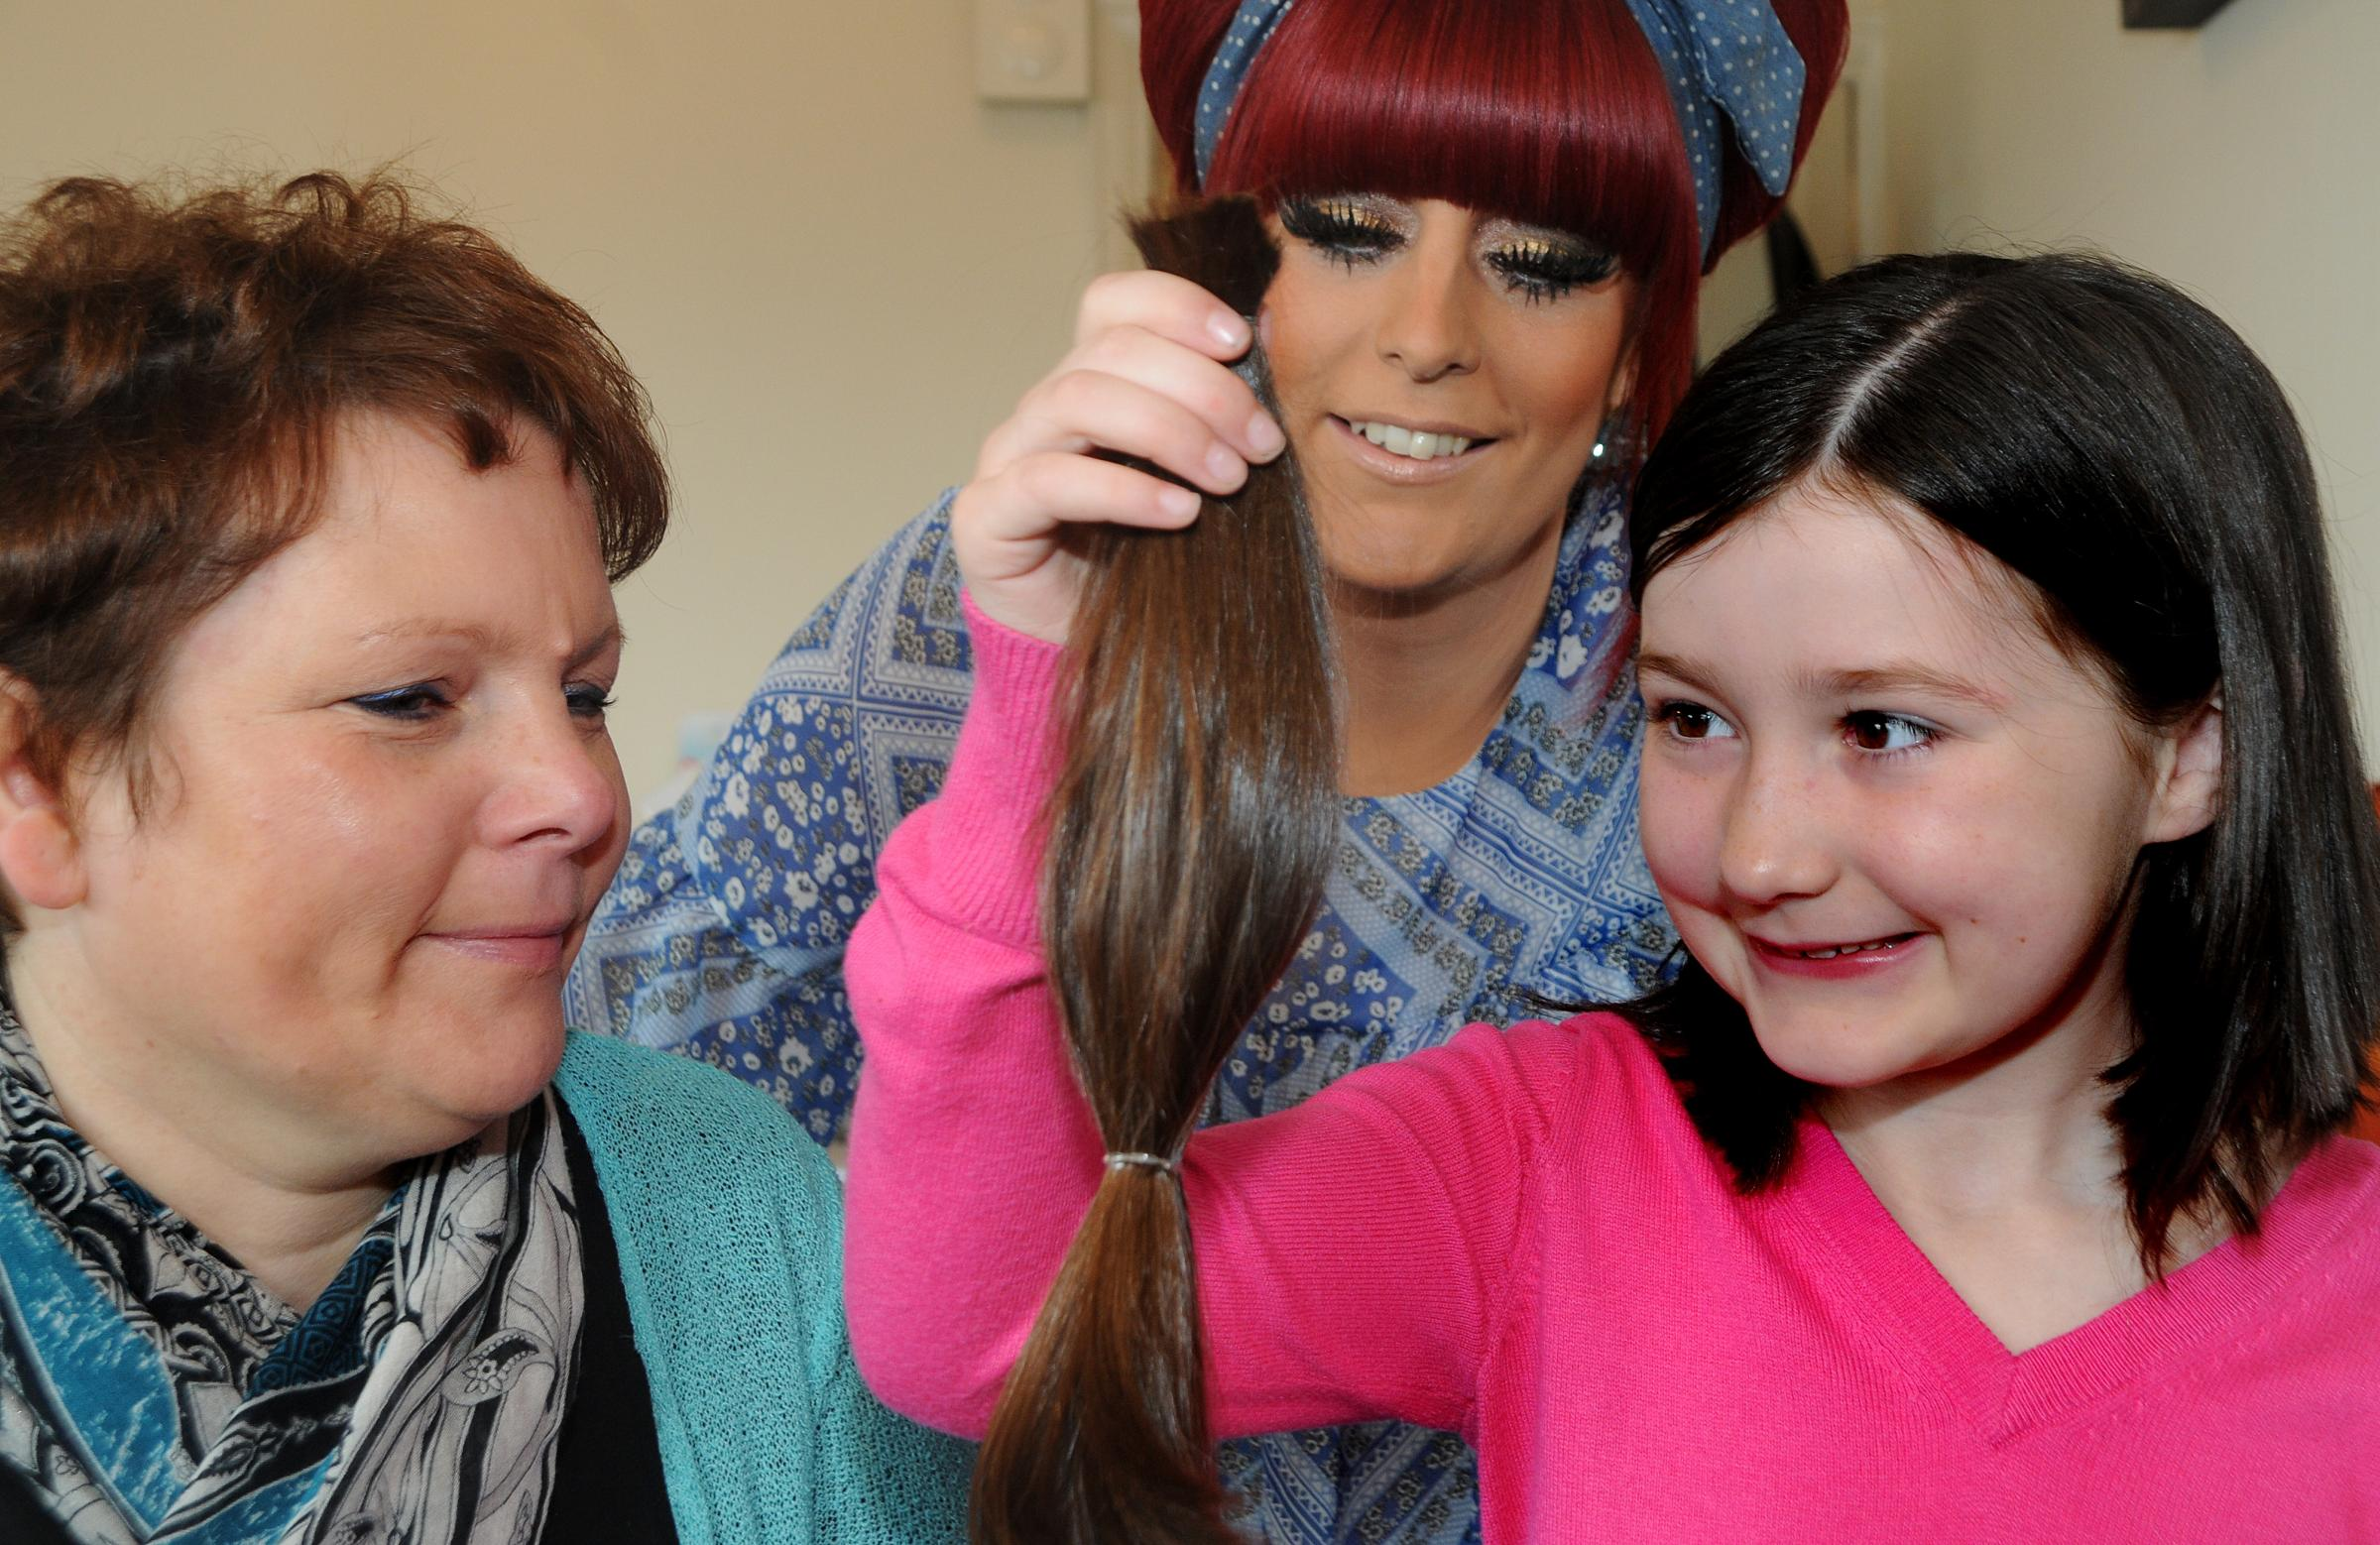 Pictured at the Inovations hair salon on Boroughbridge Road is Eleanor Phillips, aged 7, who had her hair cut short to raise money for the Leeds Teaching Hospital and the Ann Conroy Trust. Pictured with Eleanor are Ange Fenton and Jessica Morgan